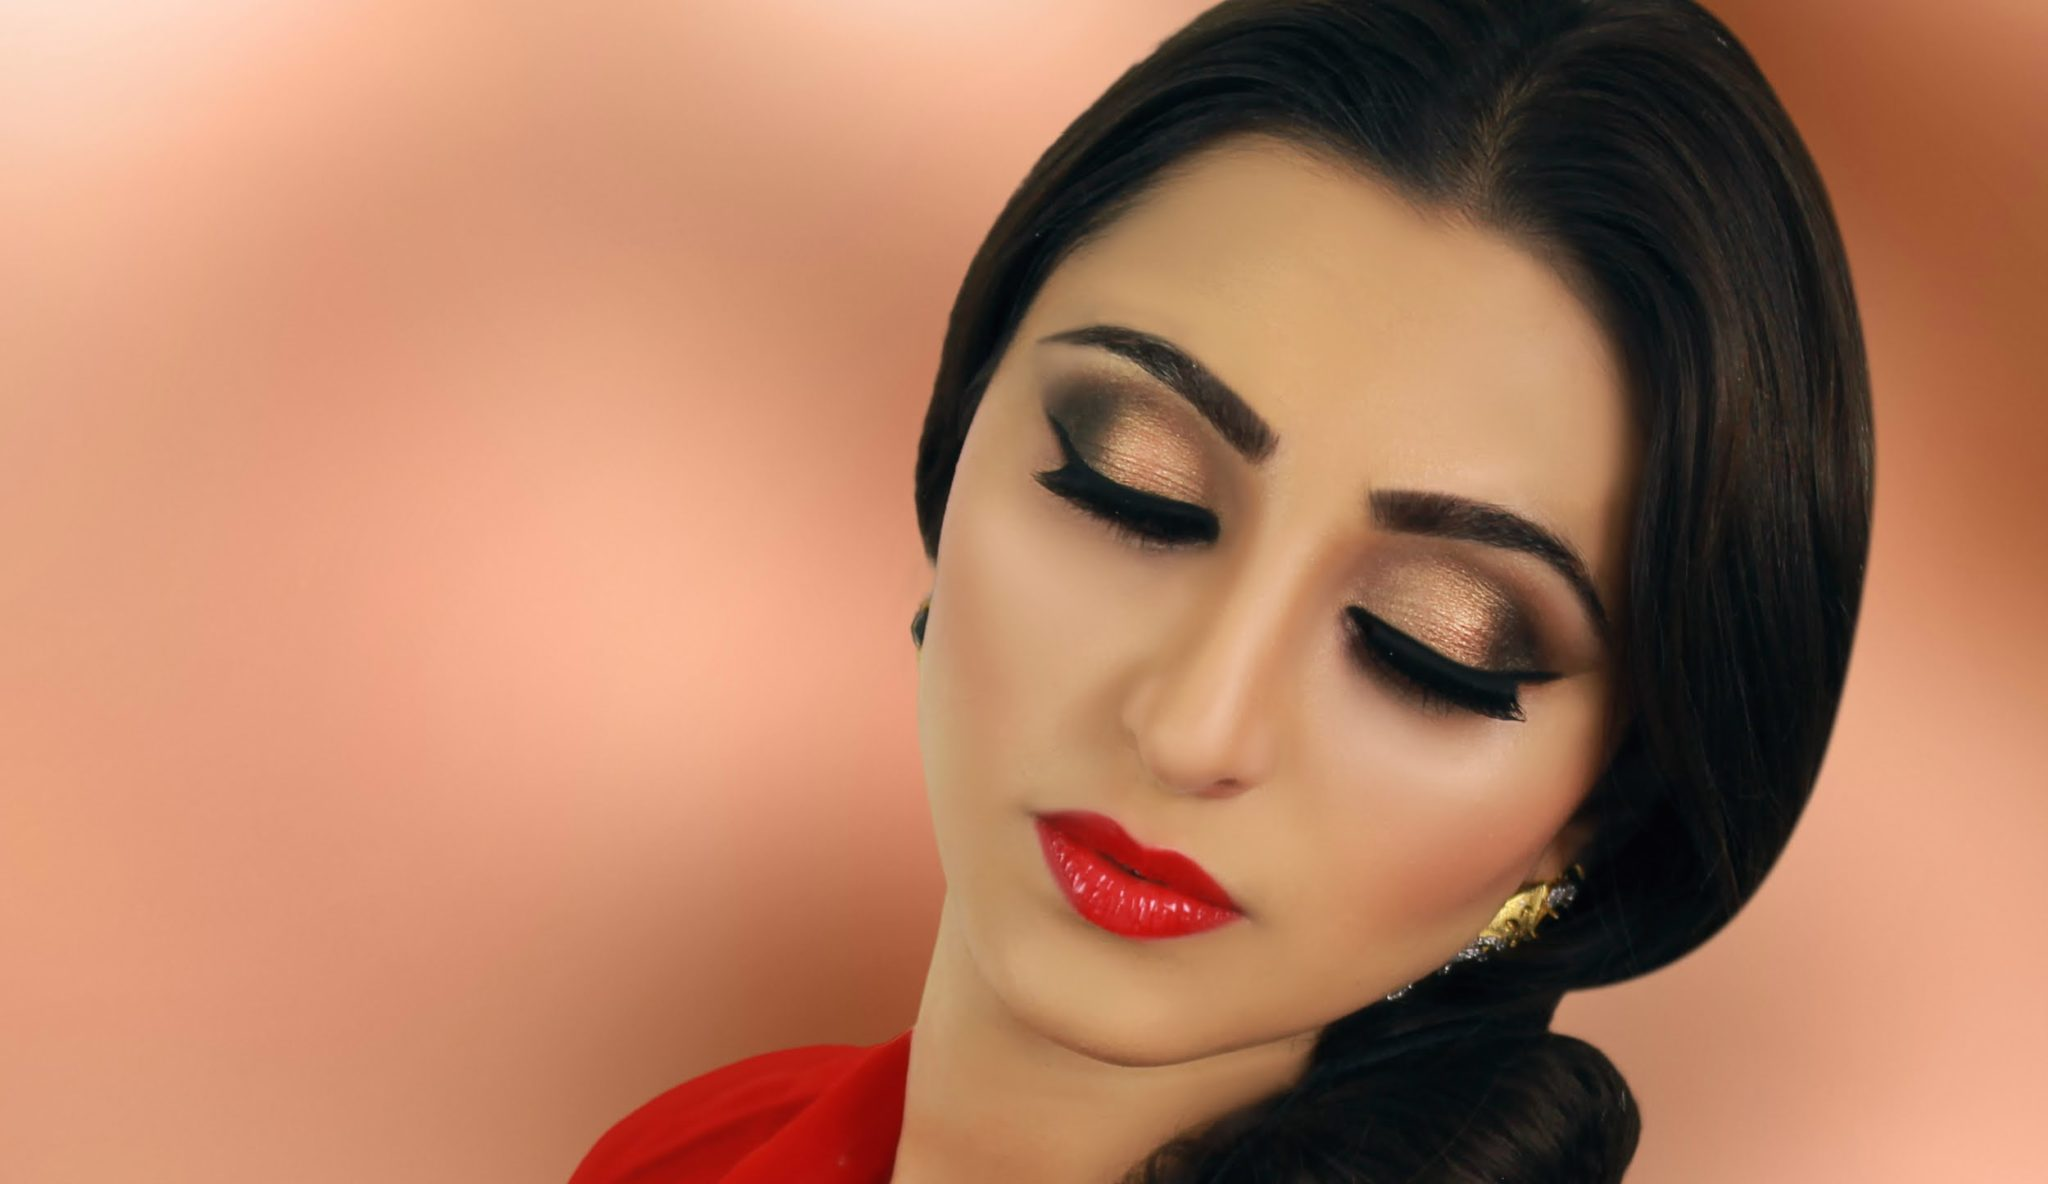 Arabic Style Eye Makeup Tutorial And Tips - Top Pakistan